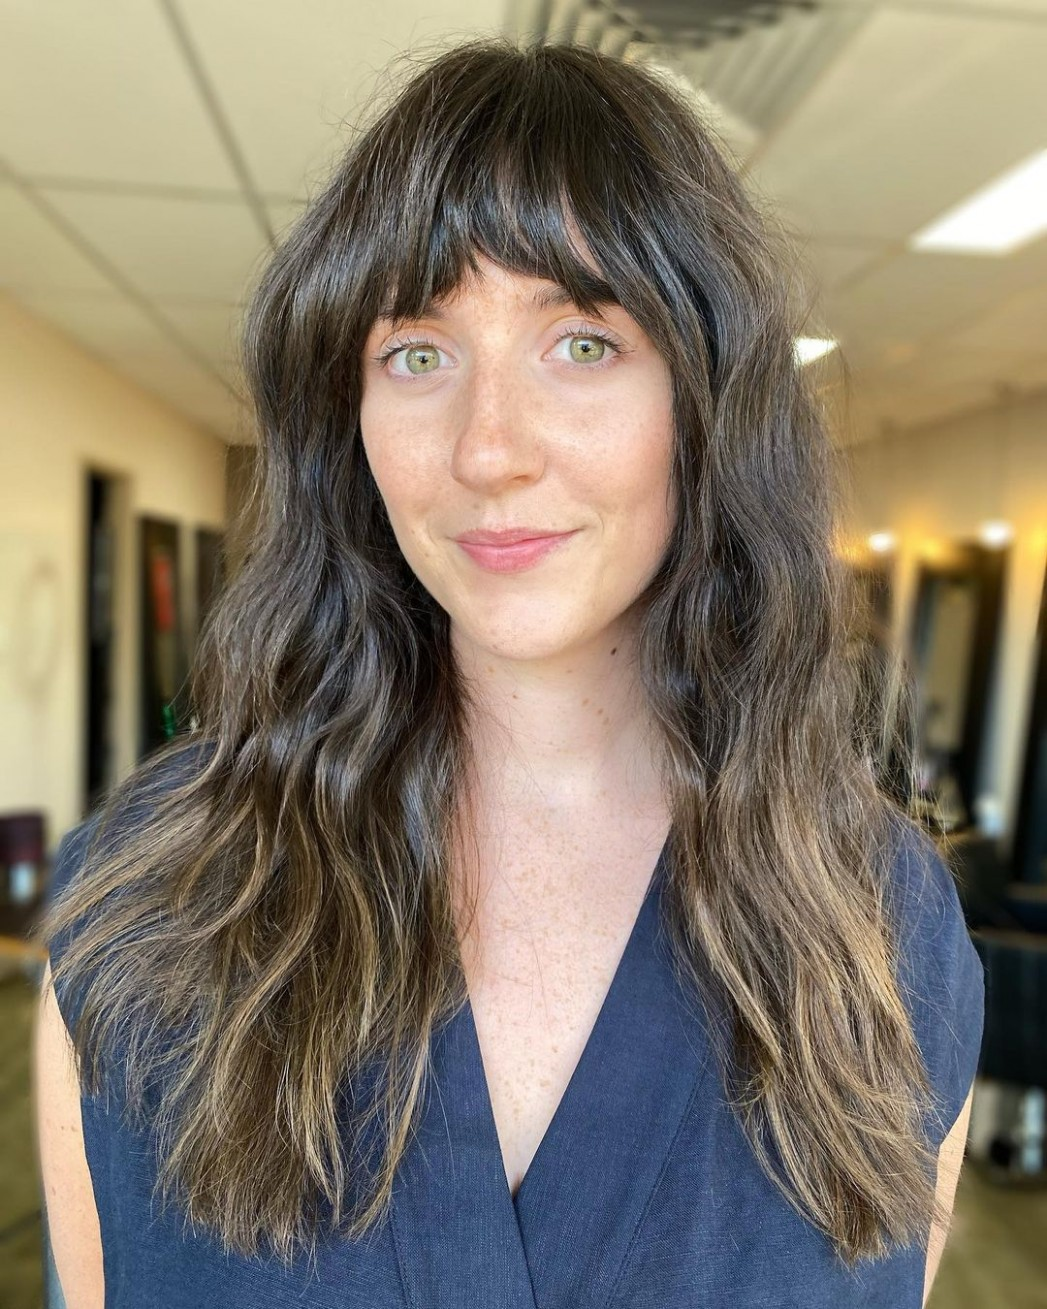 Long Hair With Bangs: 11 Best Examples of 11